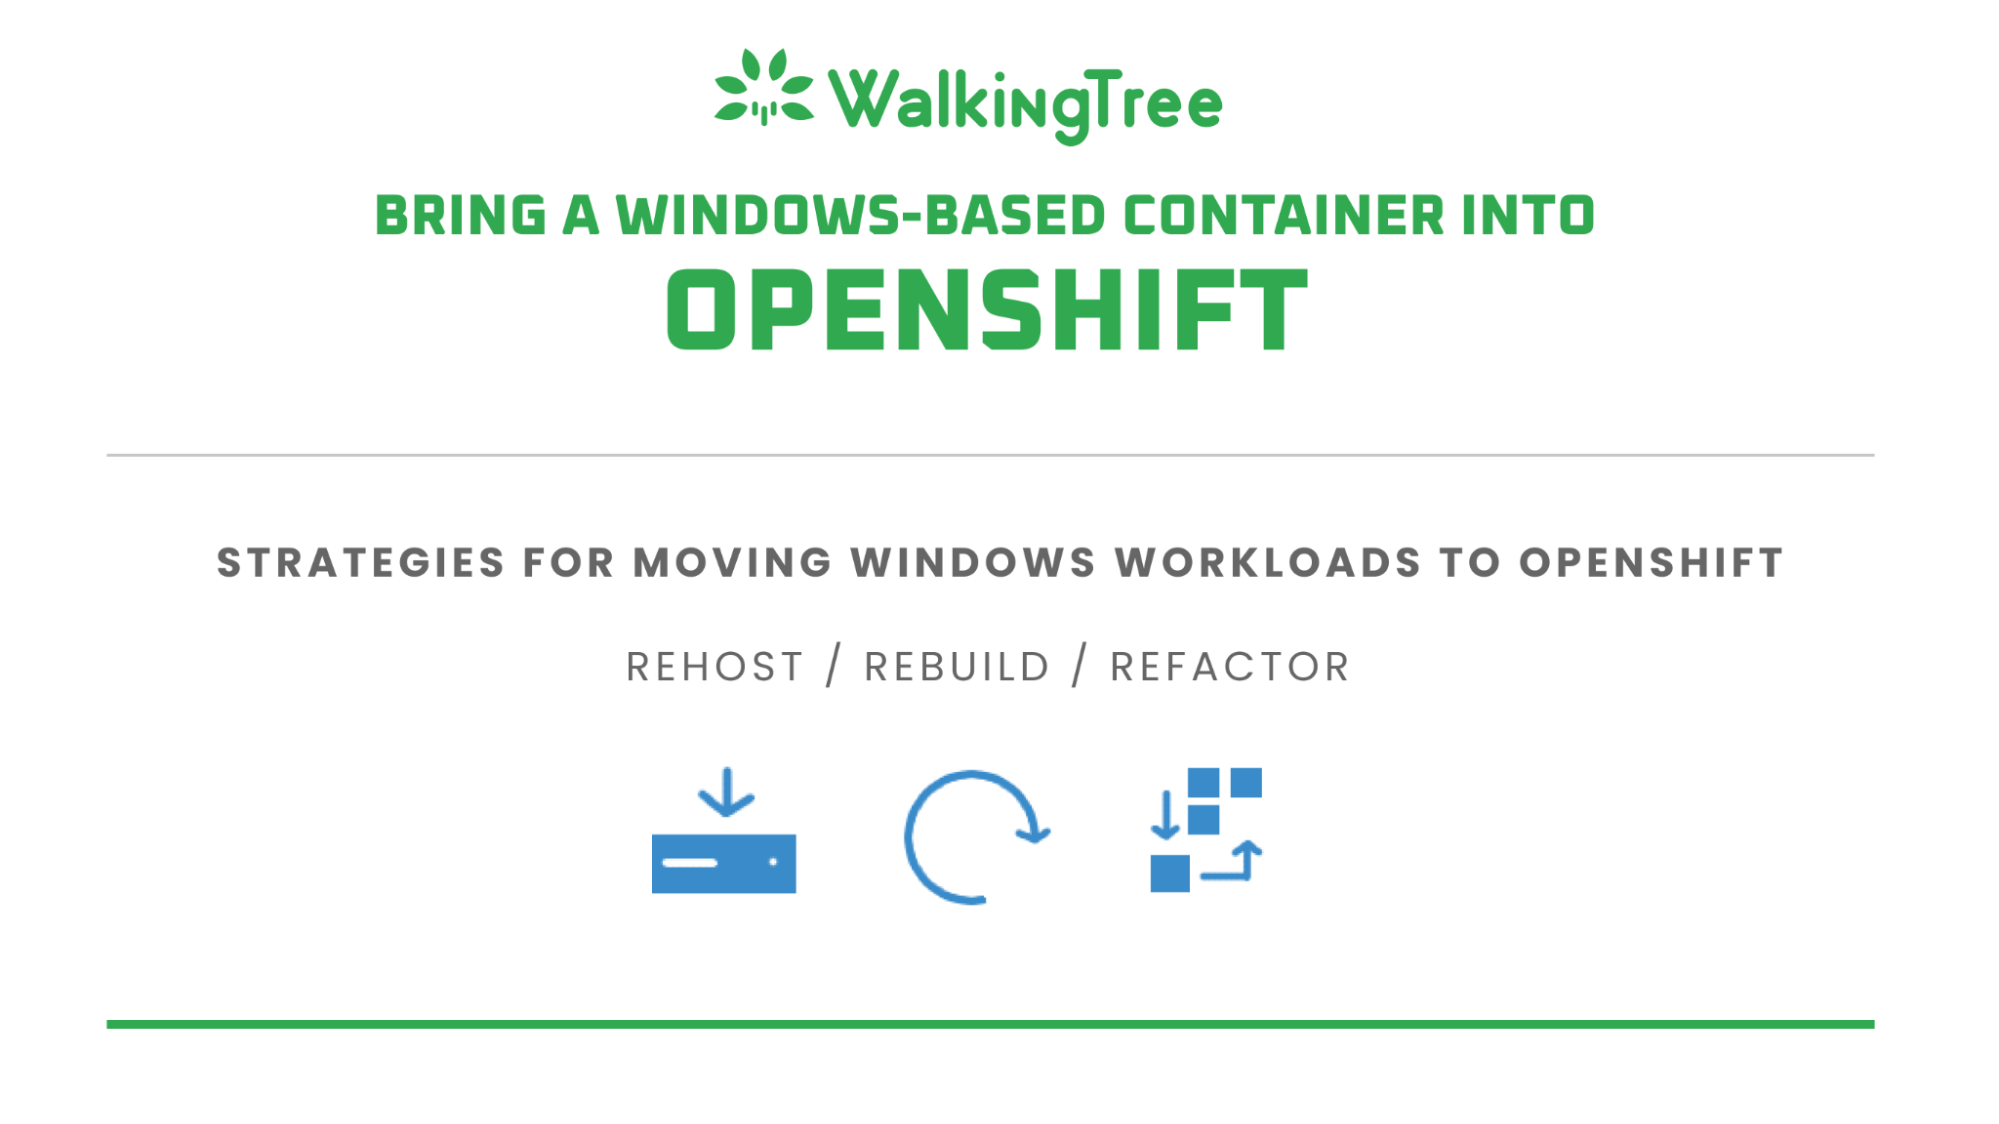 Bring a Windows-based container into OpenShift